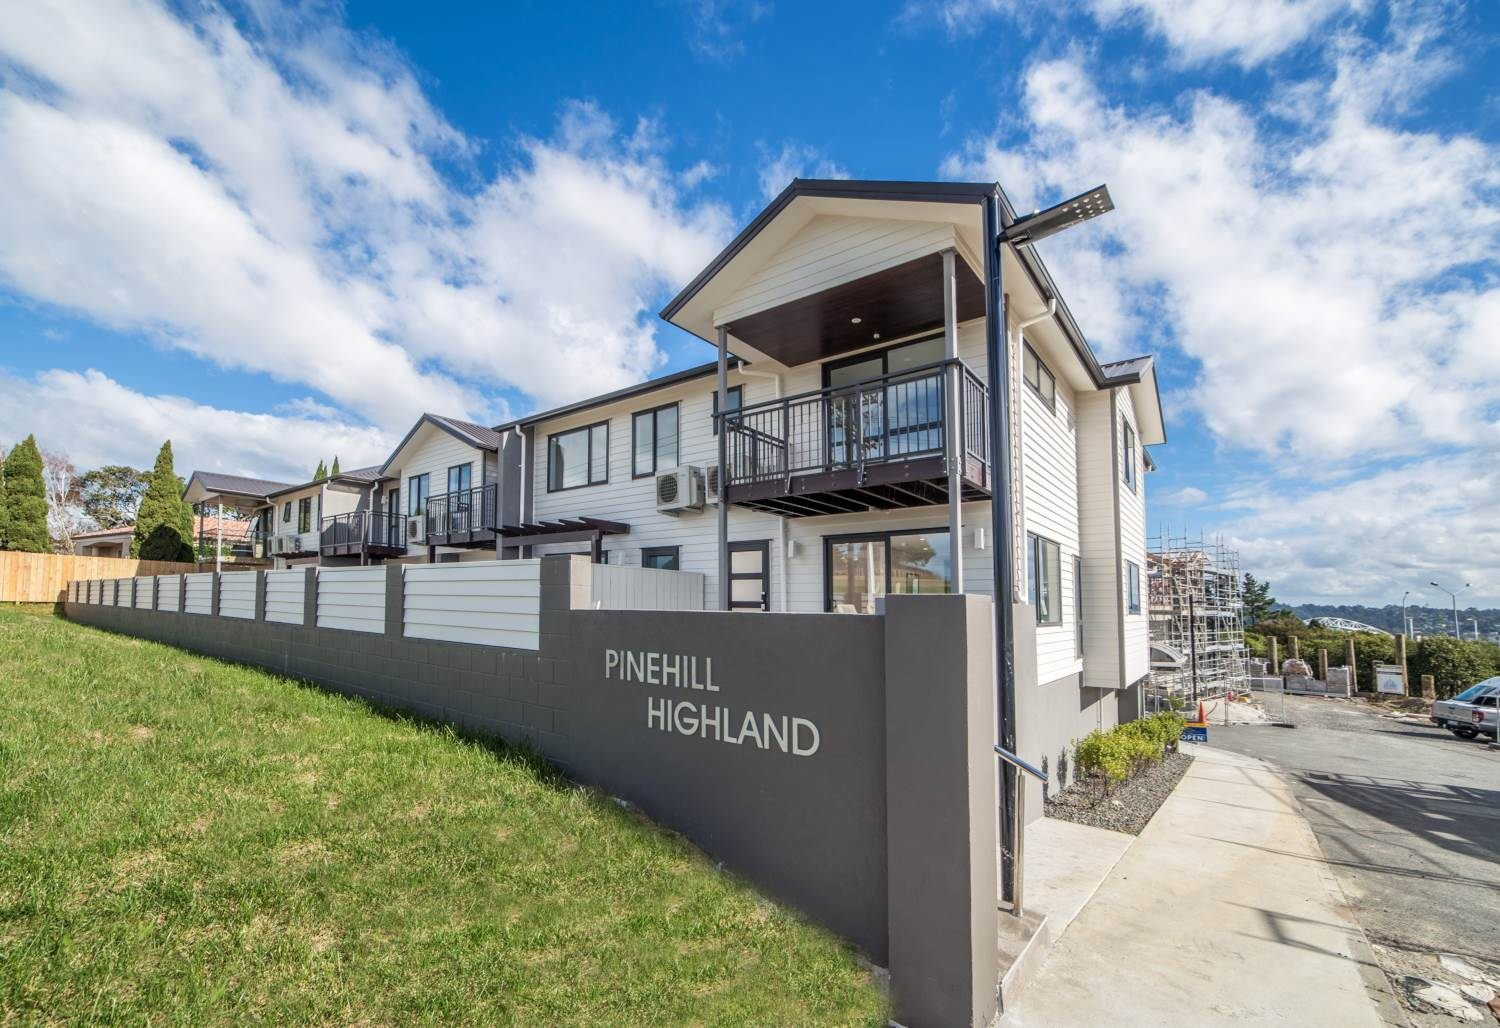 Pinehill, 4 bedrooms